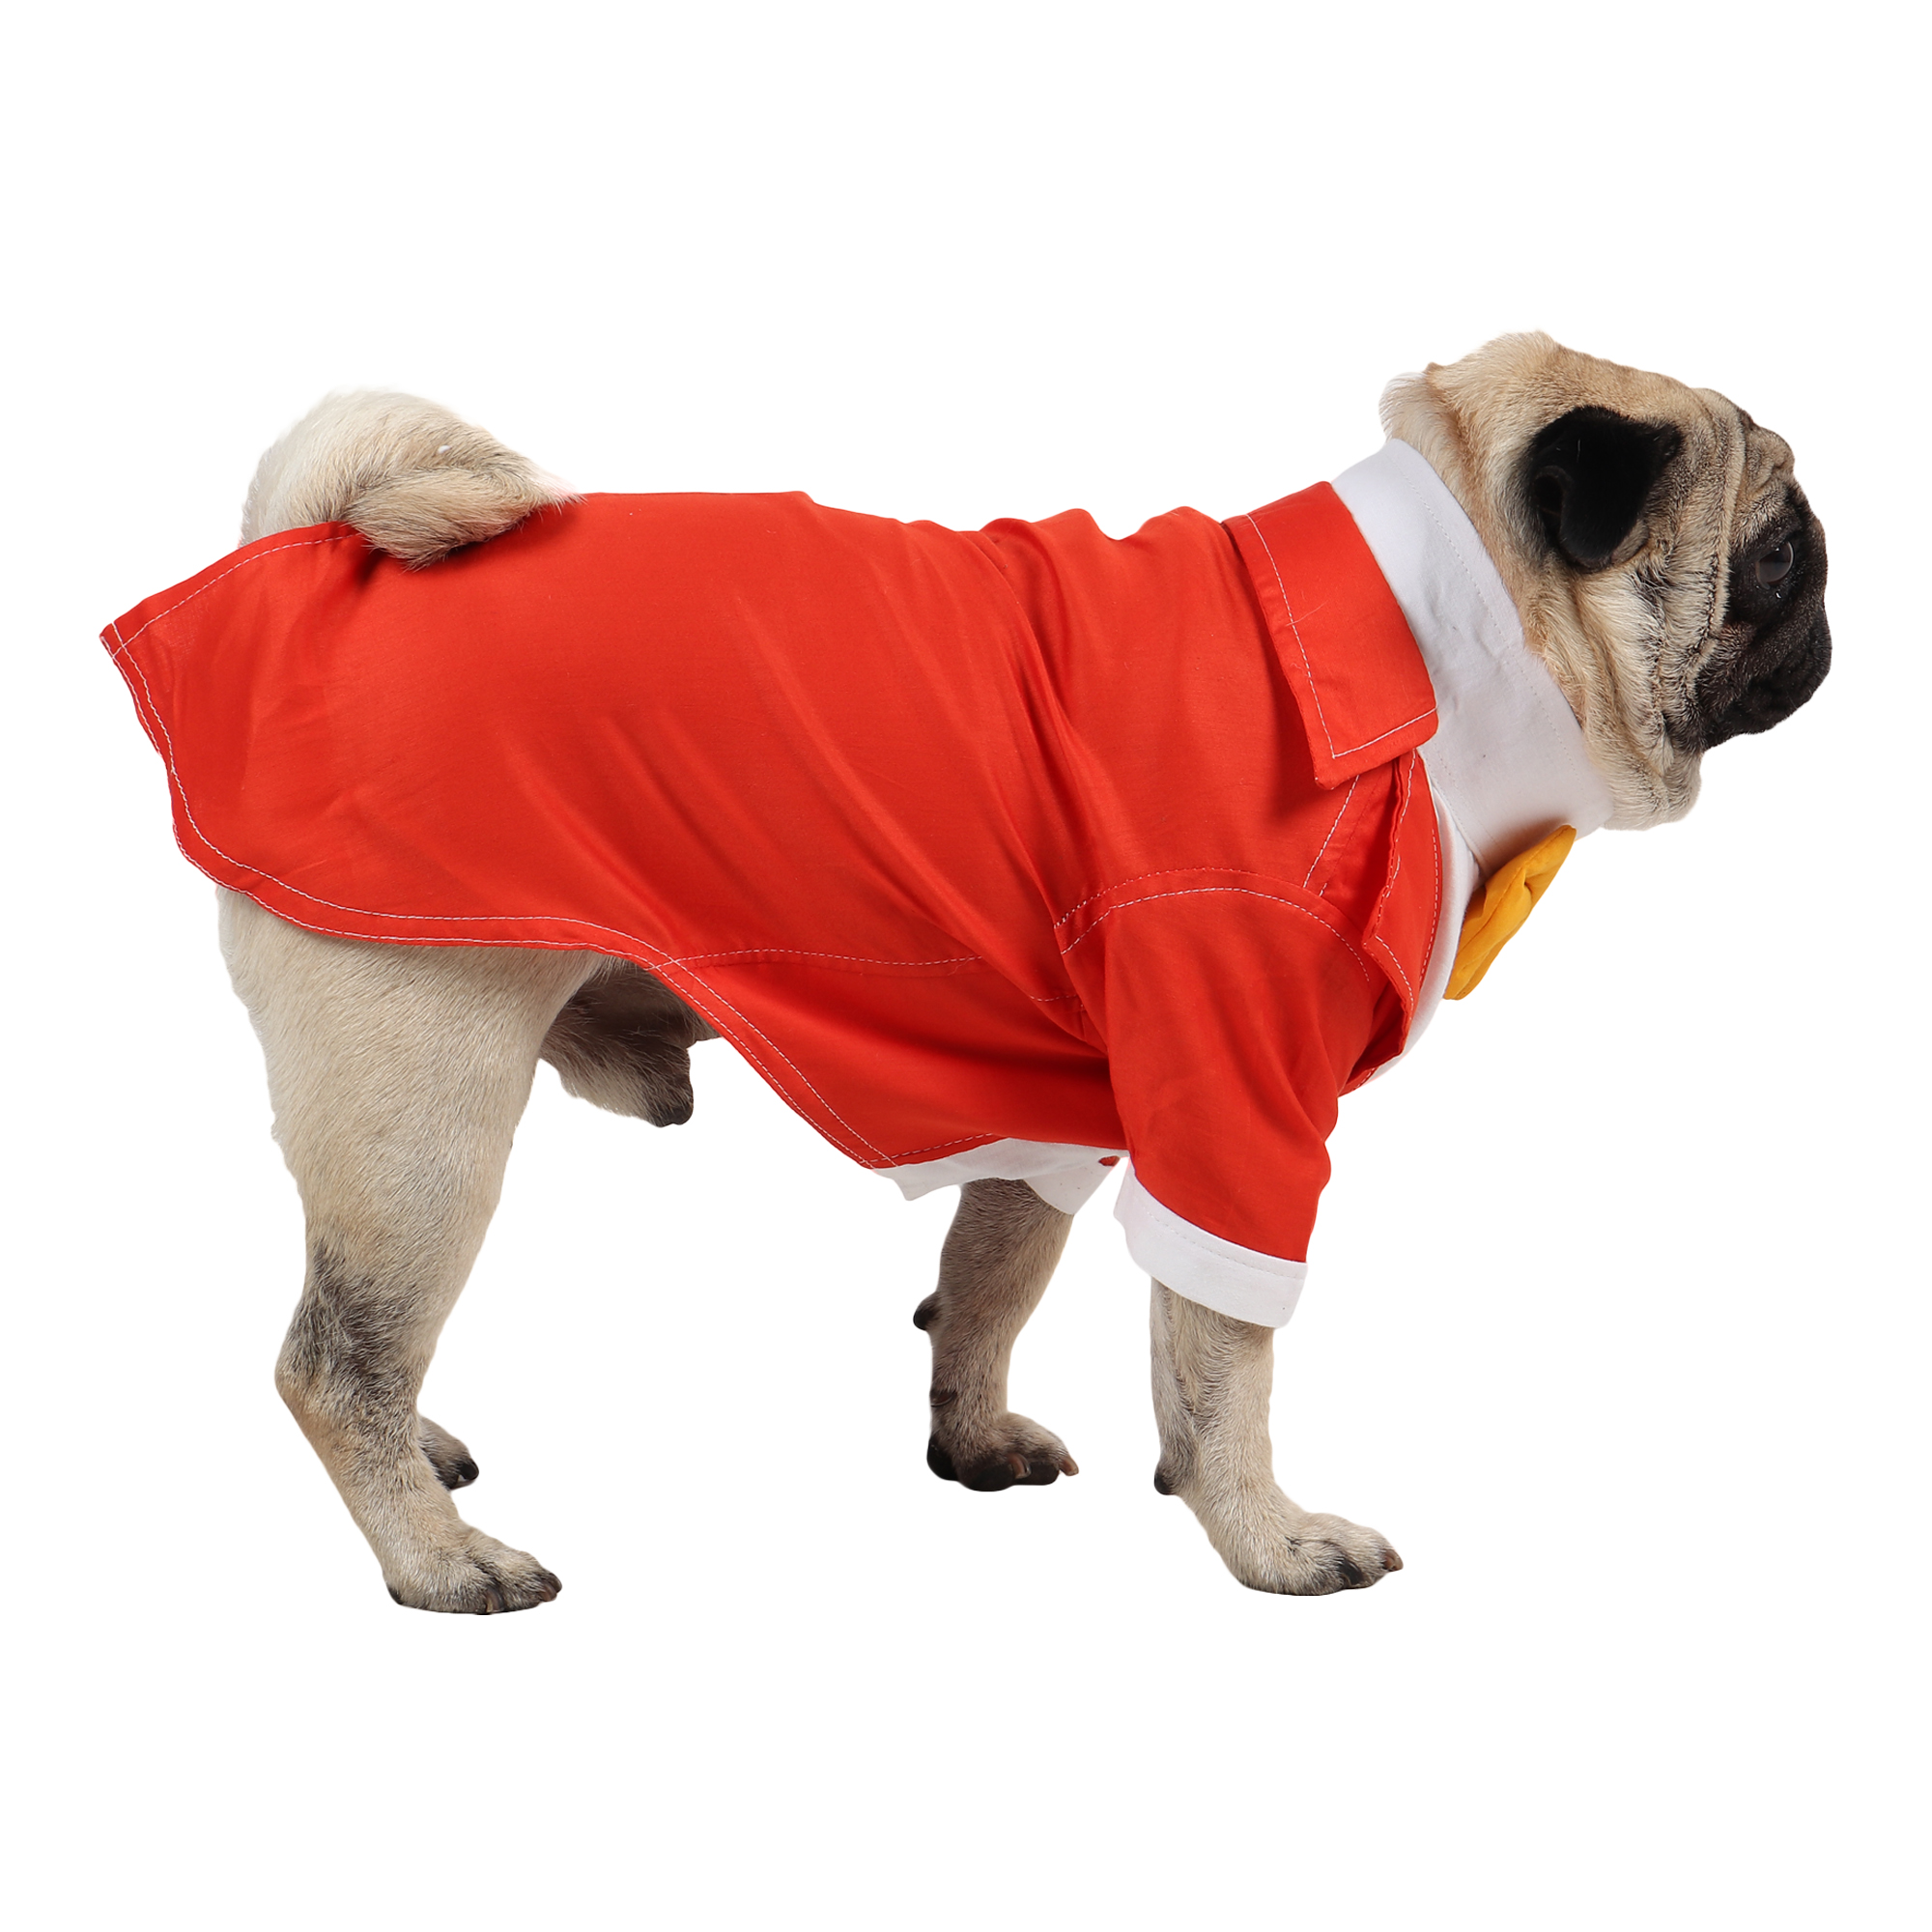 DOUGE COUTURE Party Tuxedo for Dogs( orange colour)